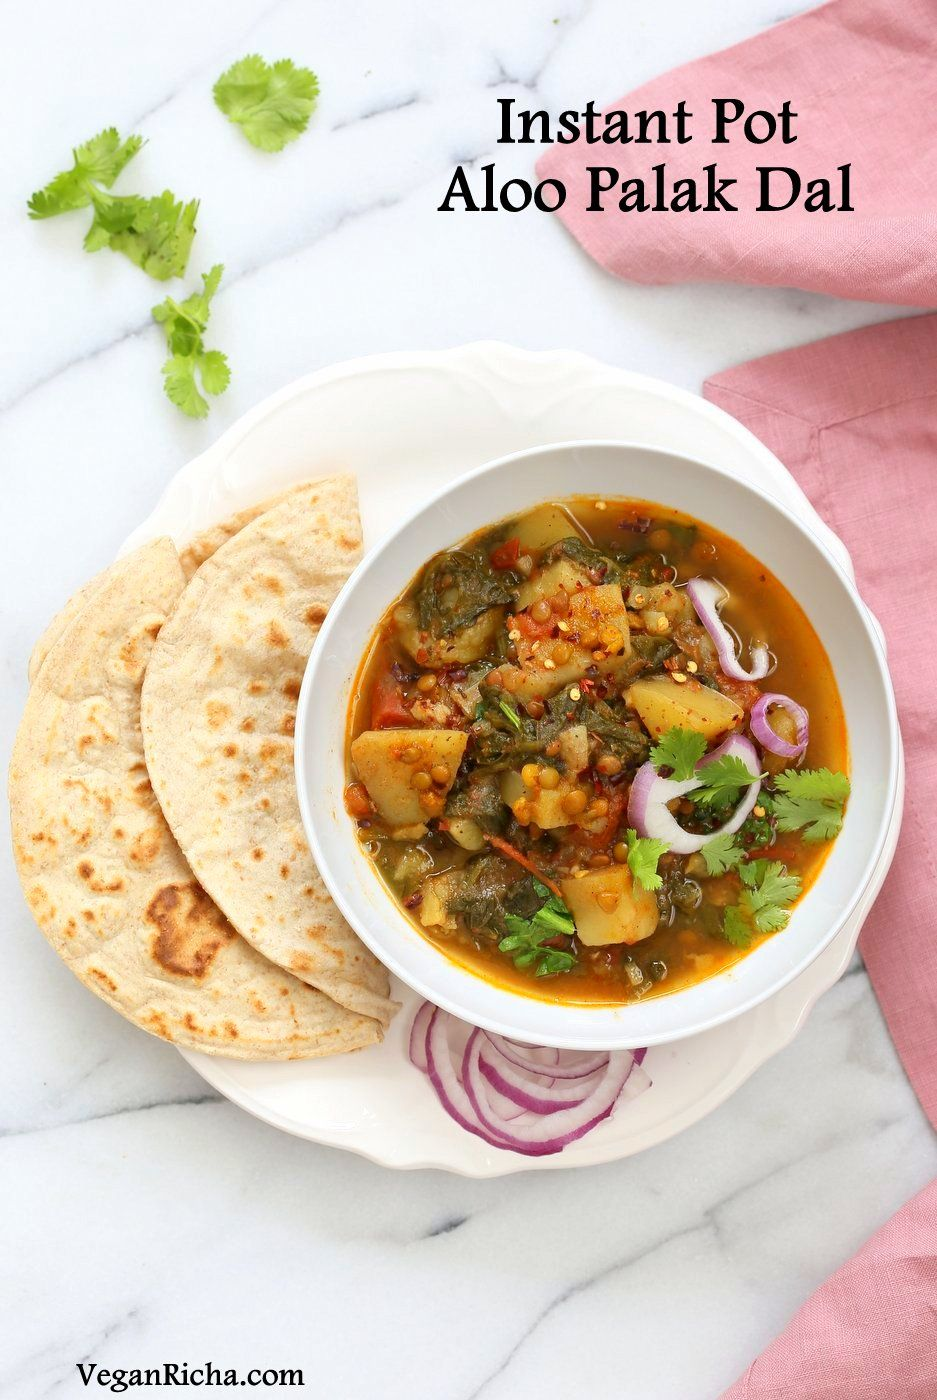 Instant Pot Aloo Palak Dal Spiced Potato Spinach Lentils